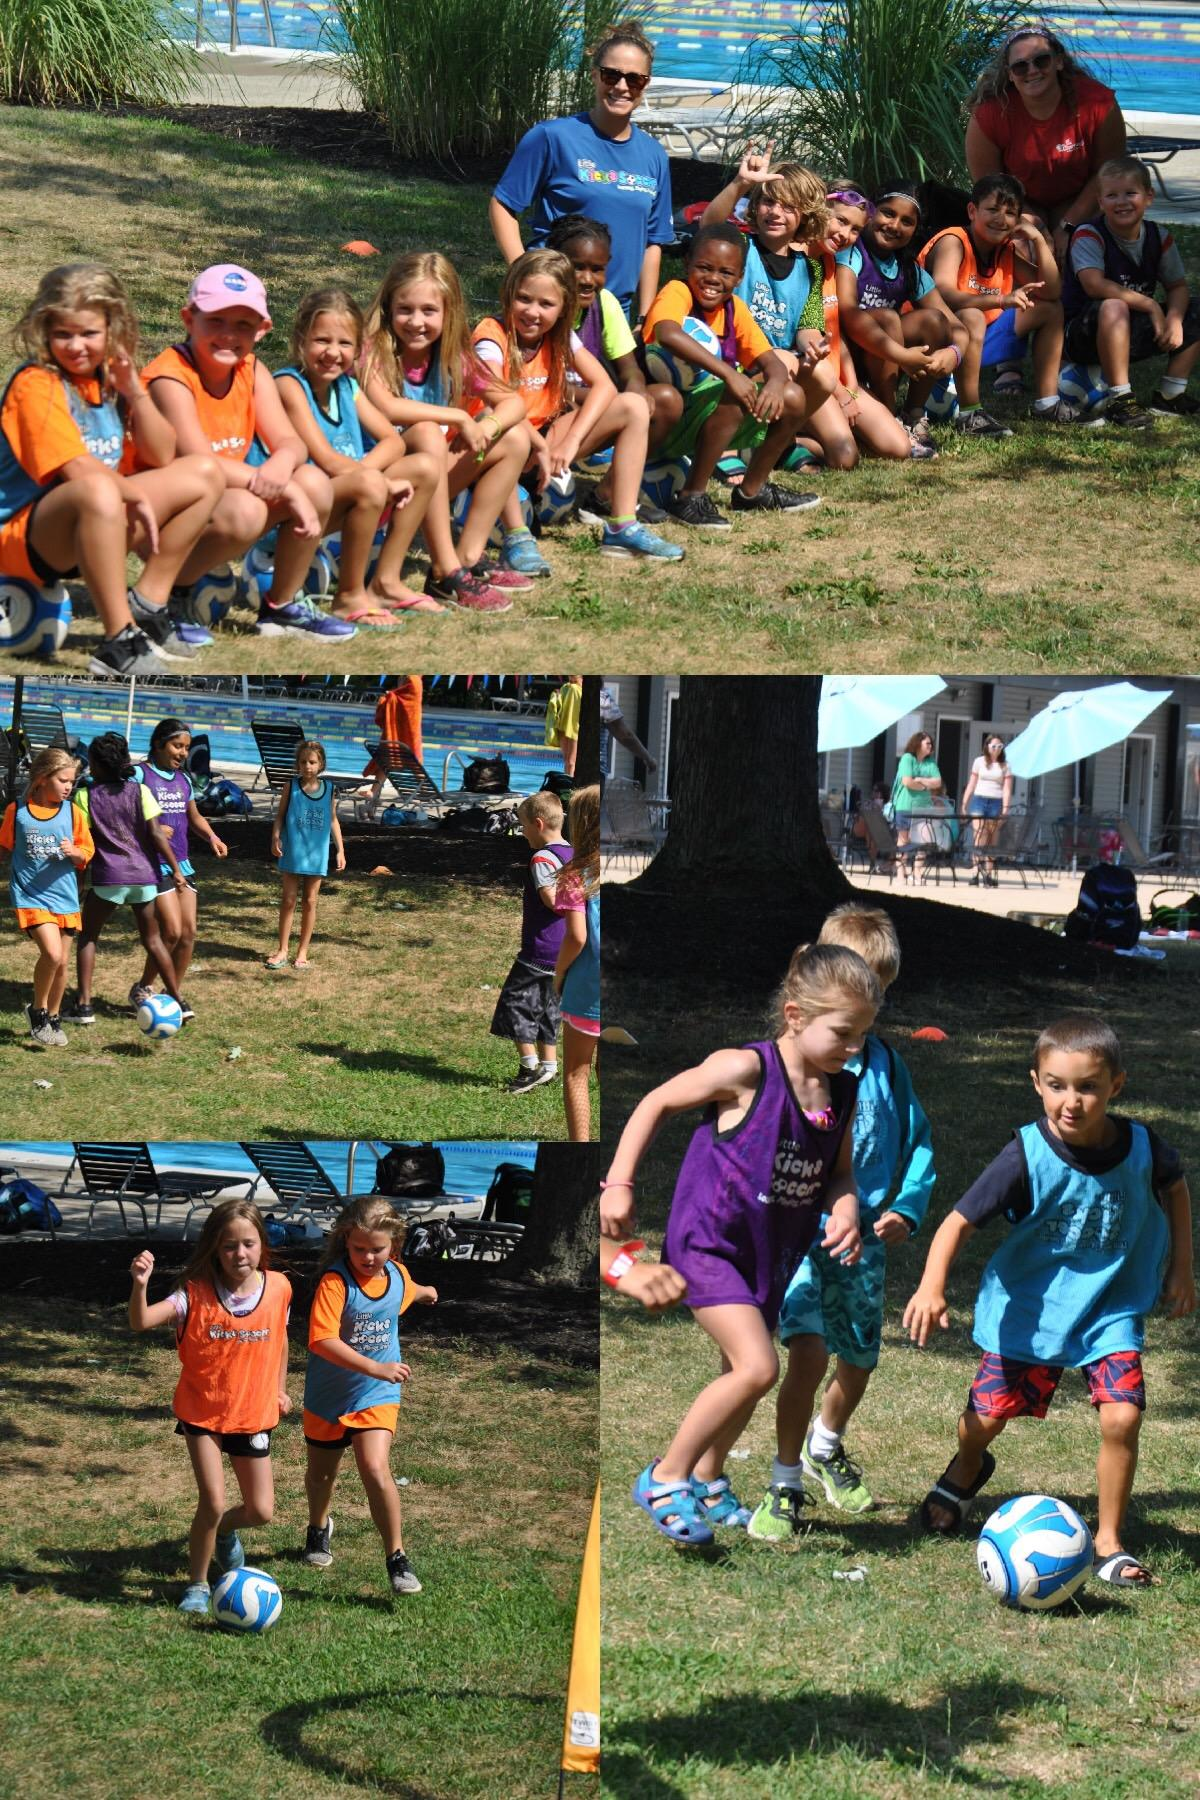 Chartwell's Happy Day Camp Marlton image 48